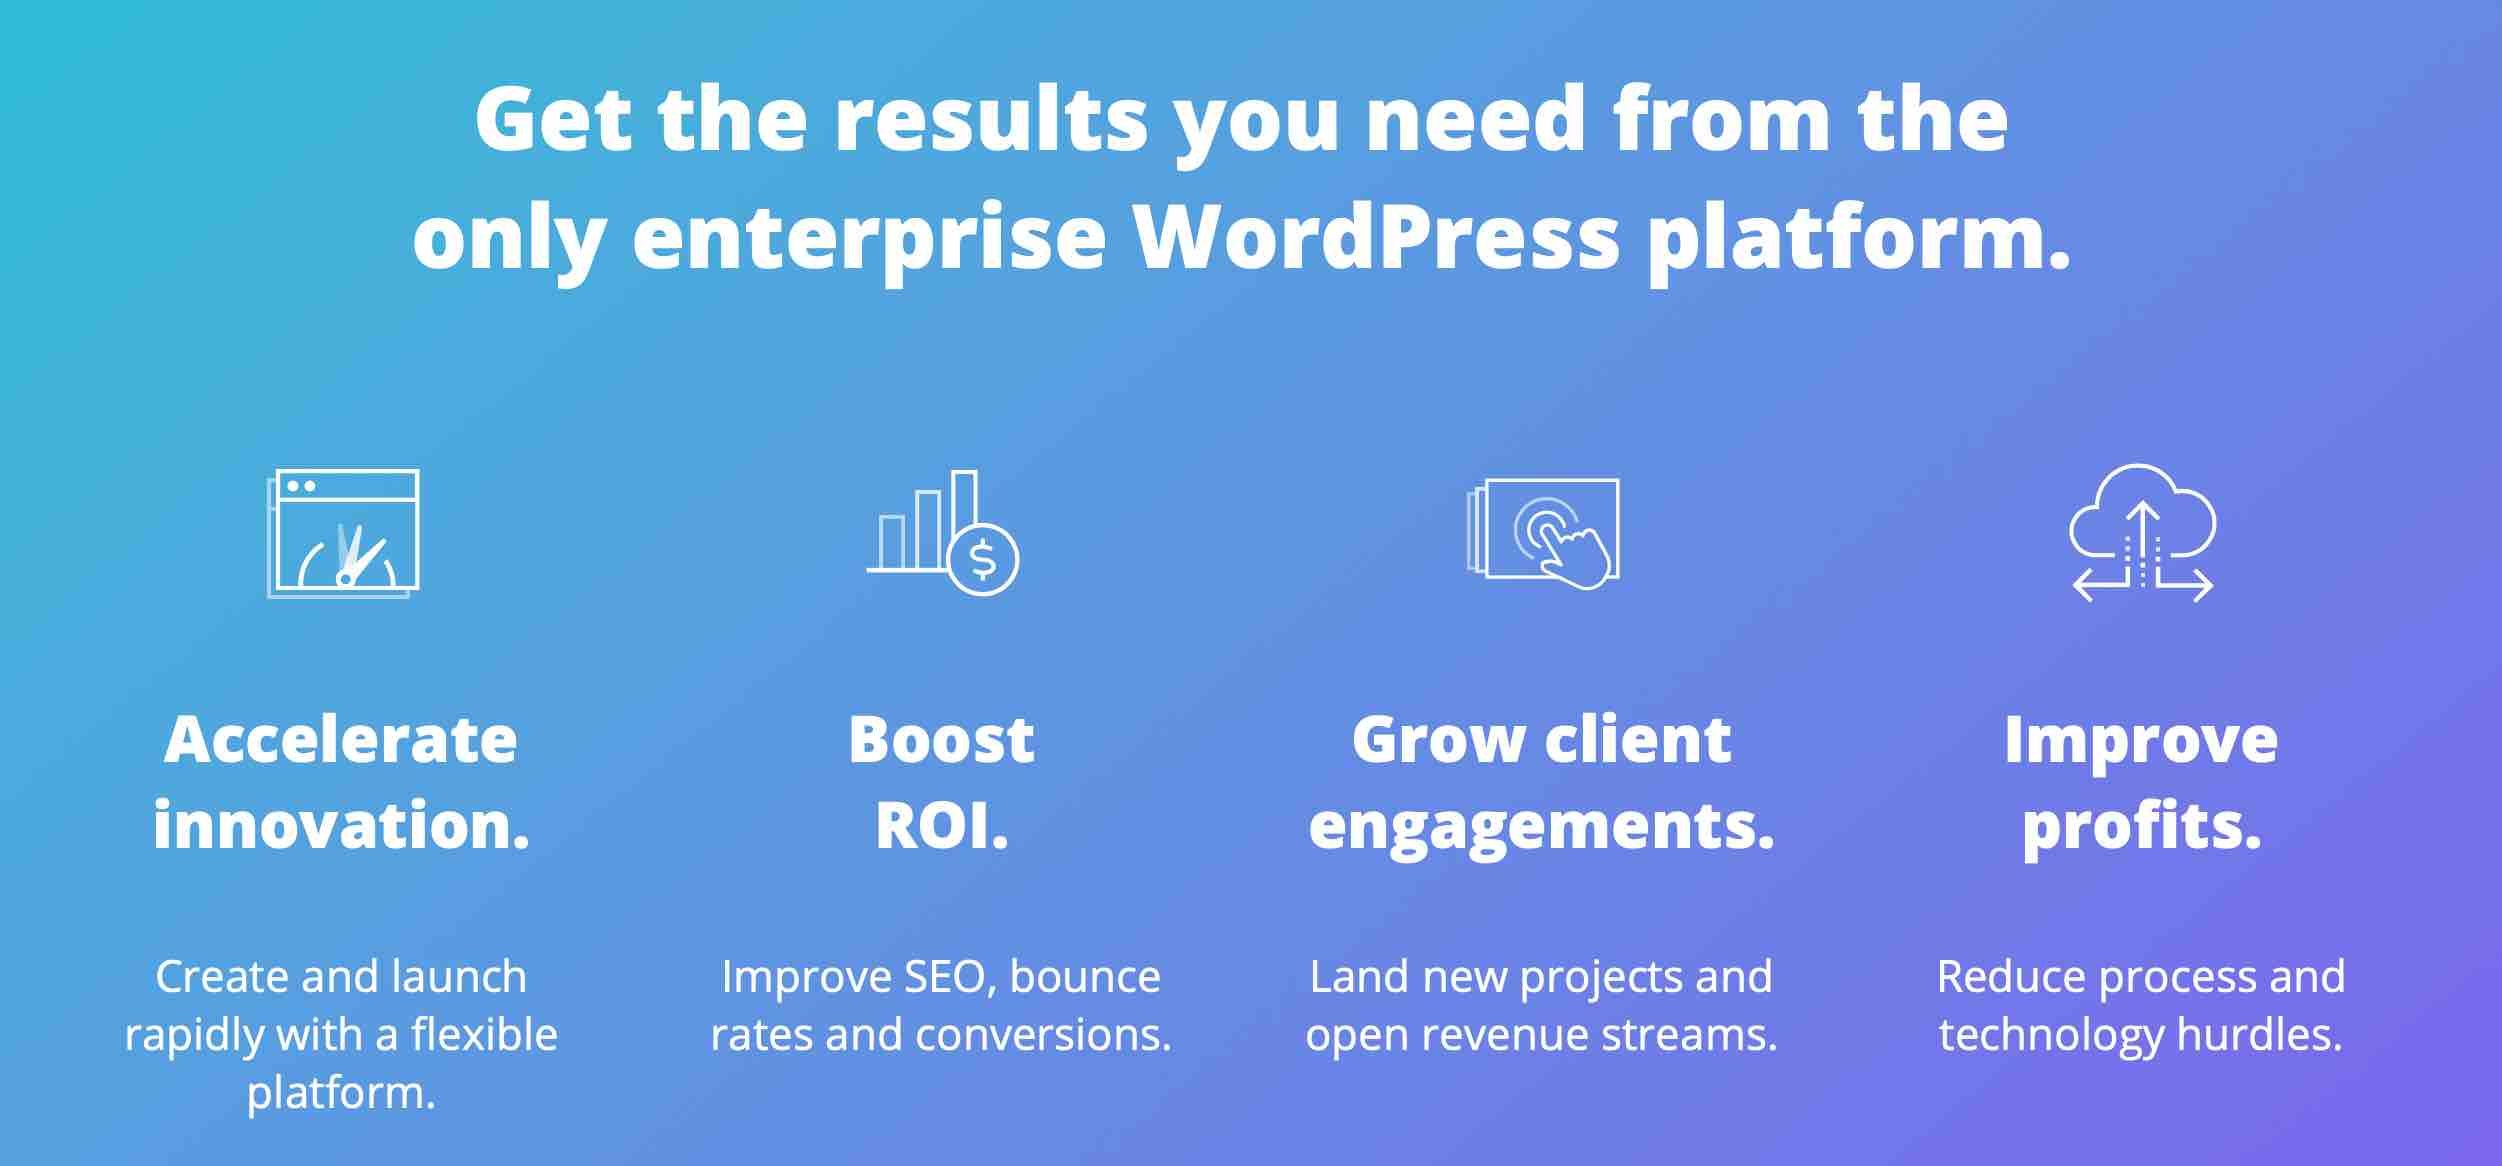 Get the results you need from the only enterprise WordPress platform